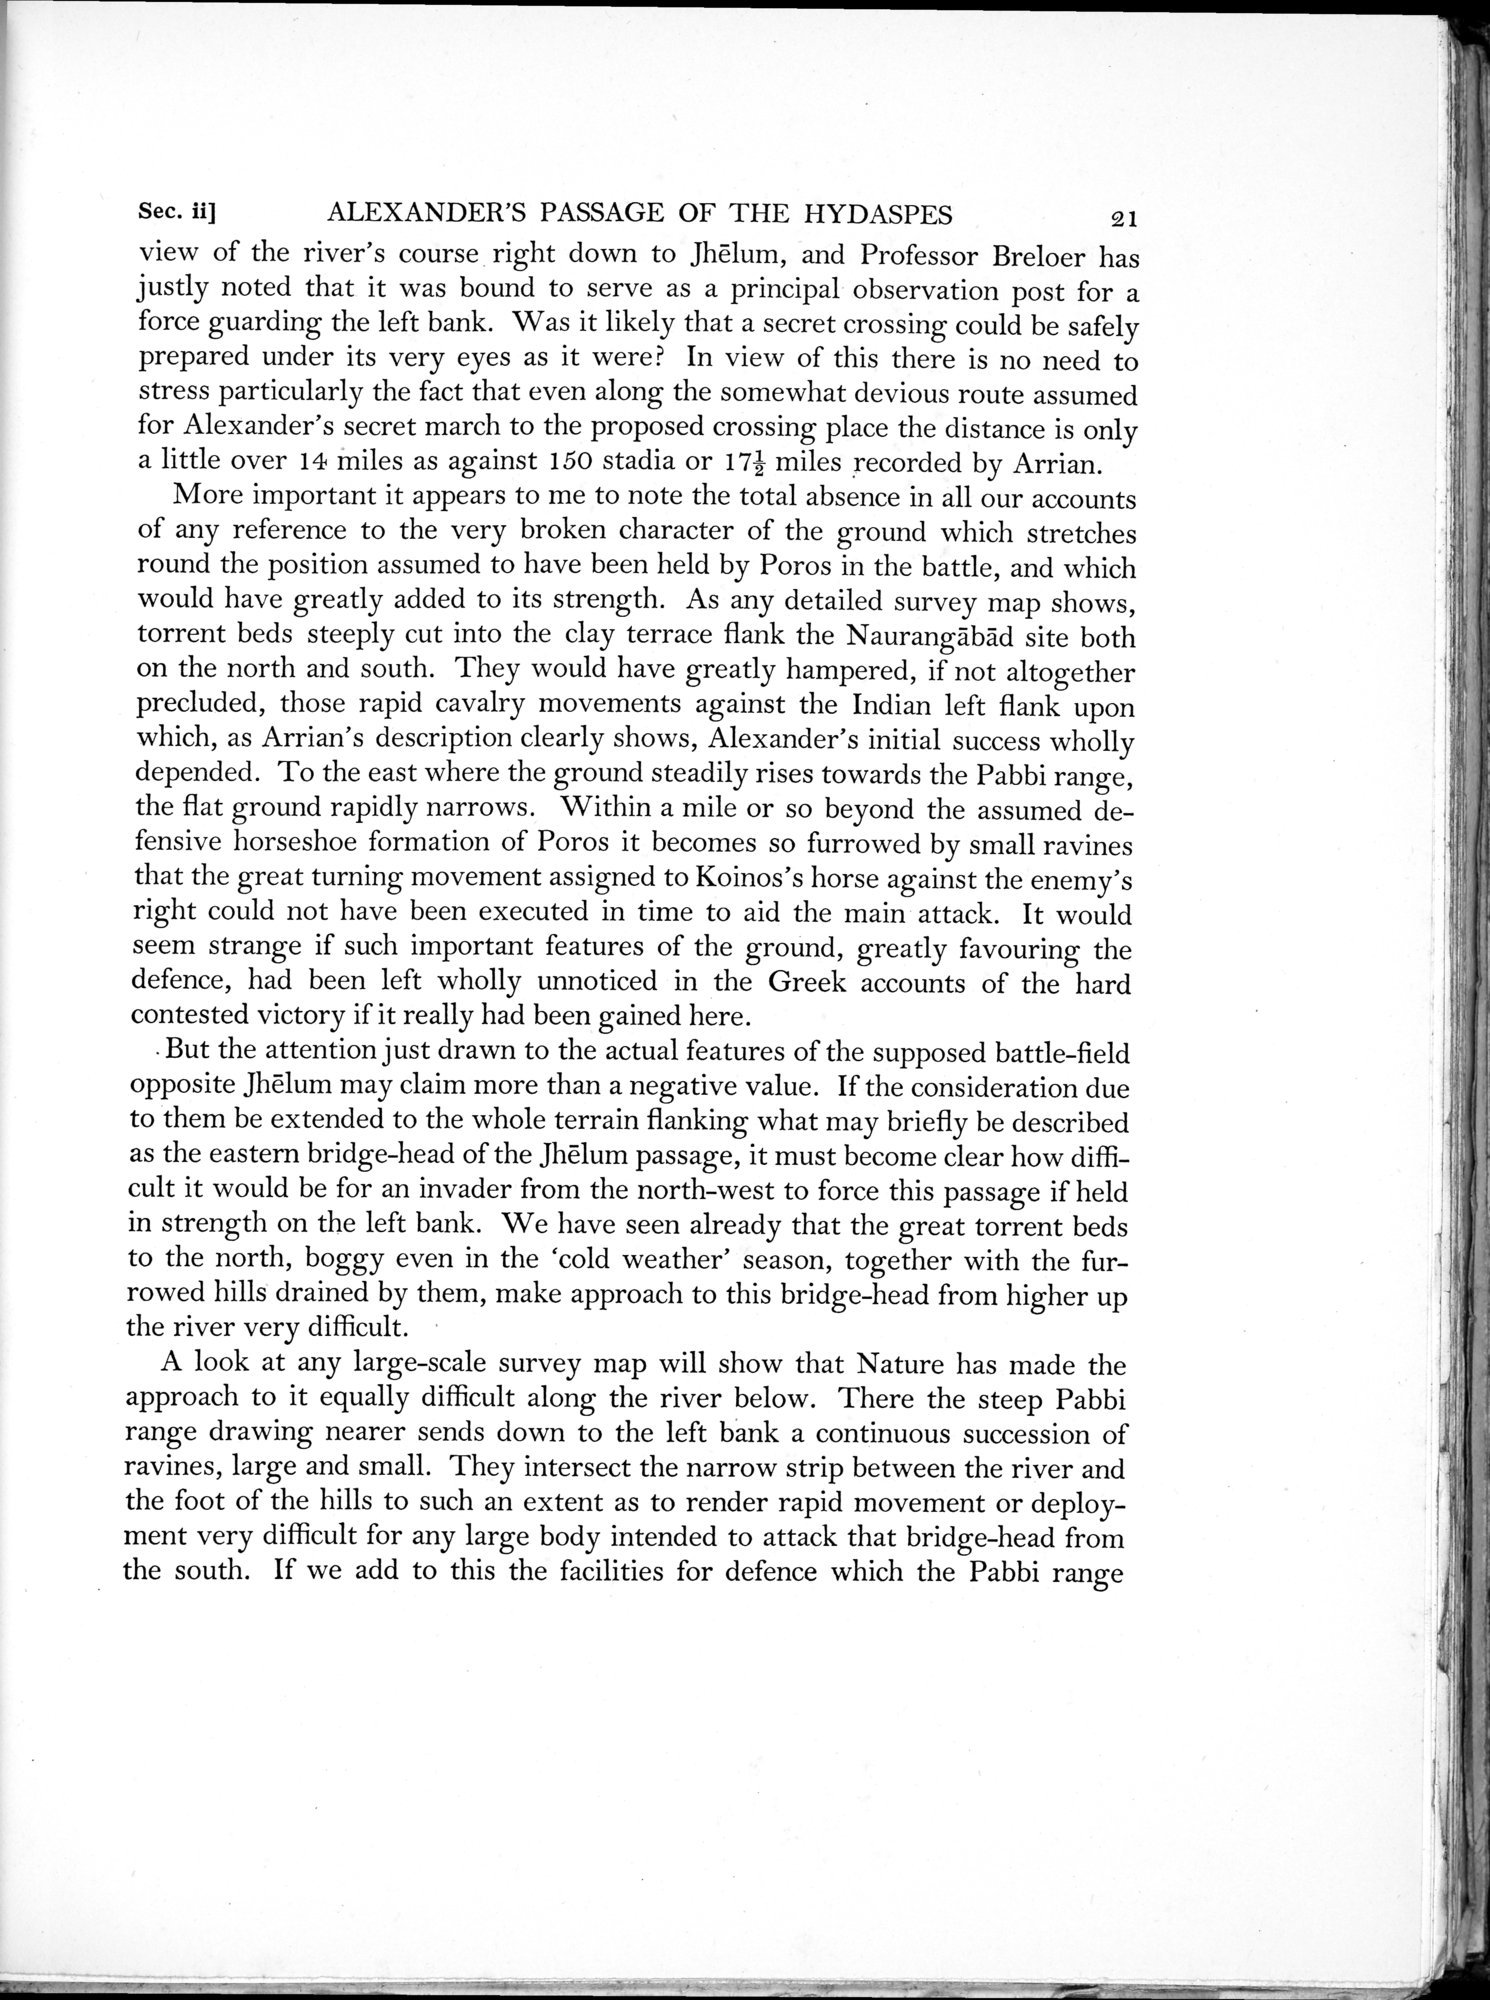 Archaeological Reconnaissances in North-Western India and South-Eastern Īrān : vol.1 / Page 47 (Grayscale High Resolution Image)